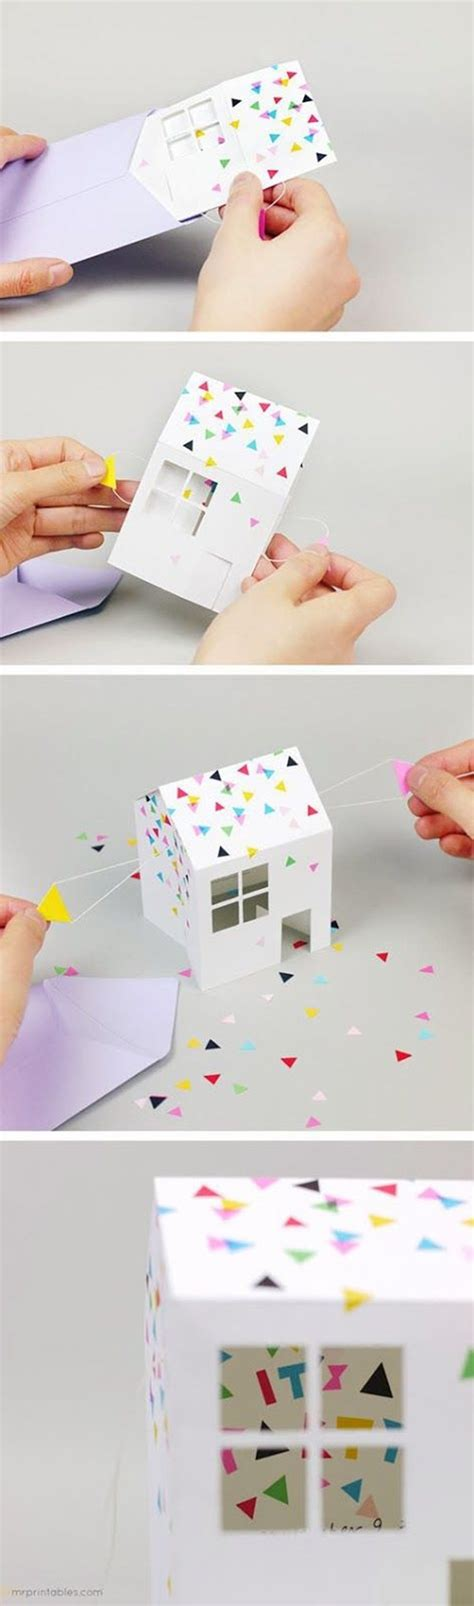 creative paper craft ideas creative paper craft ideas 30 picked